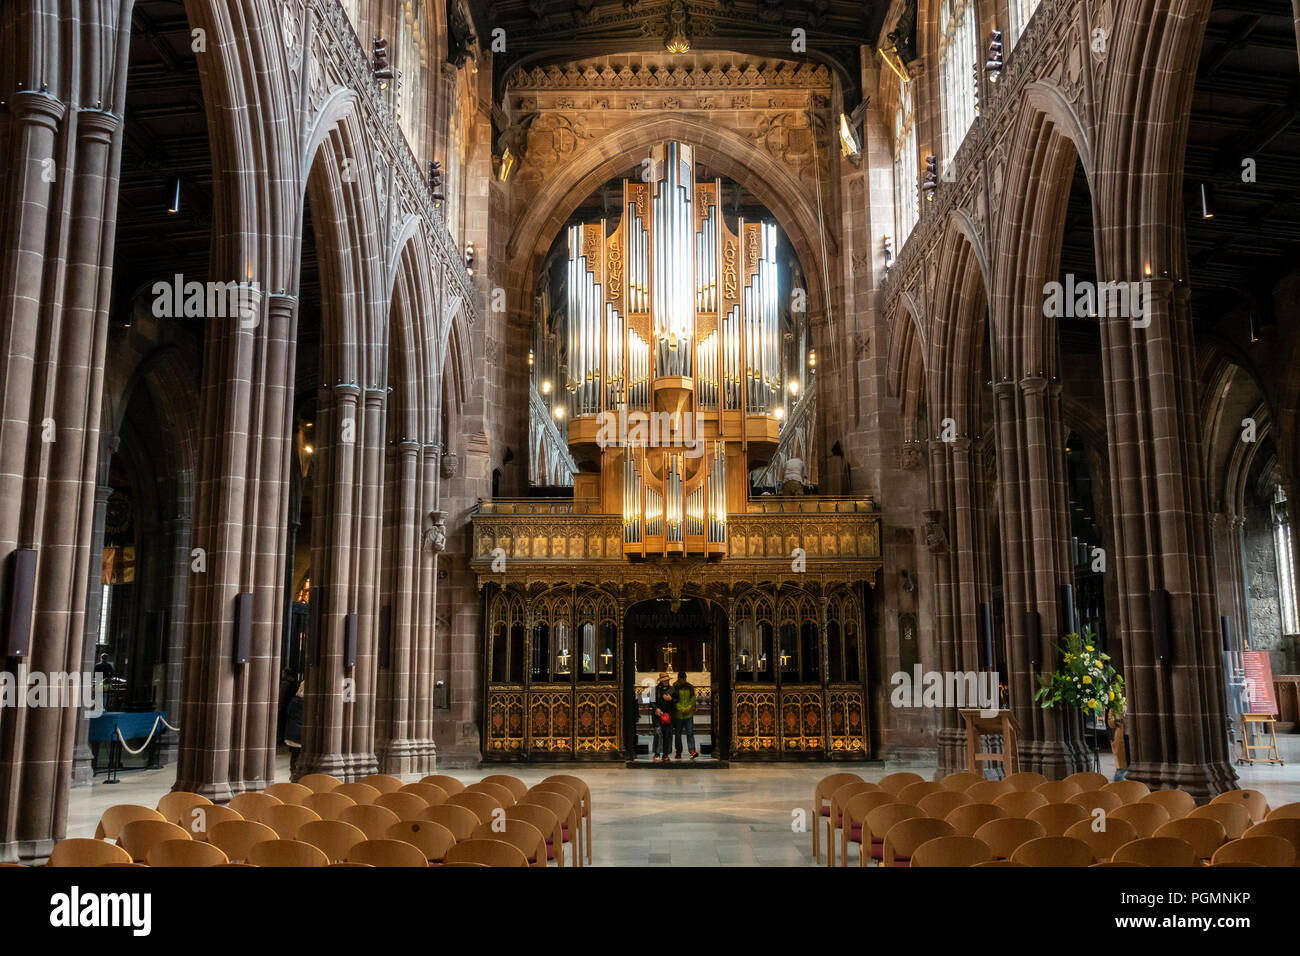 Nave of Manchester Cathedral, in Manchester, England. - Stock Image